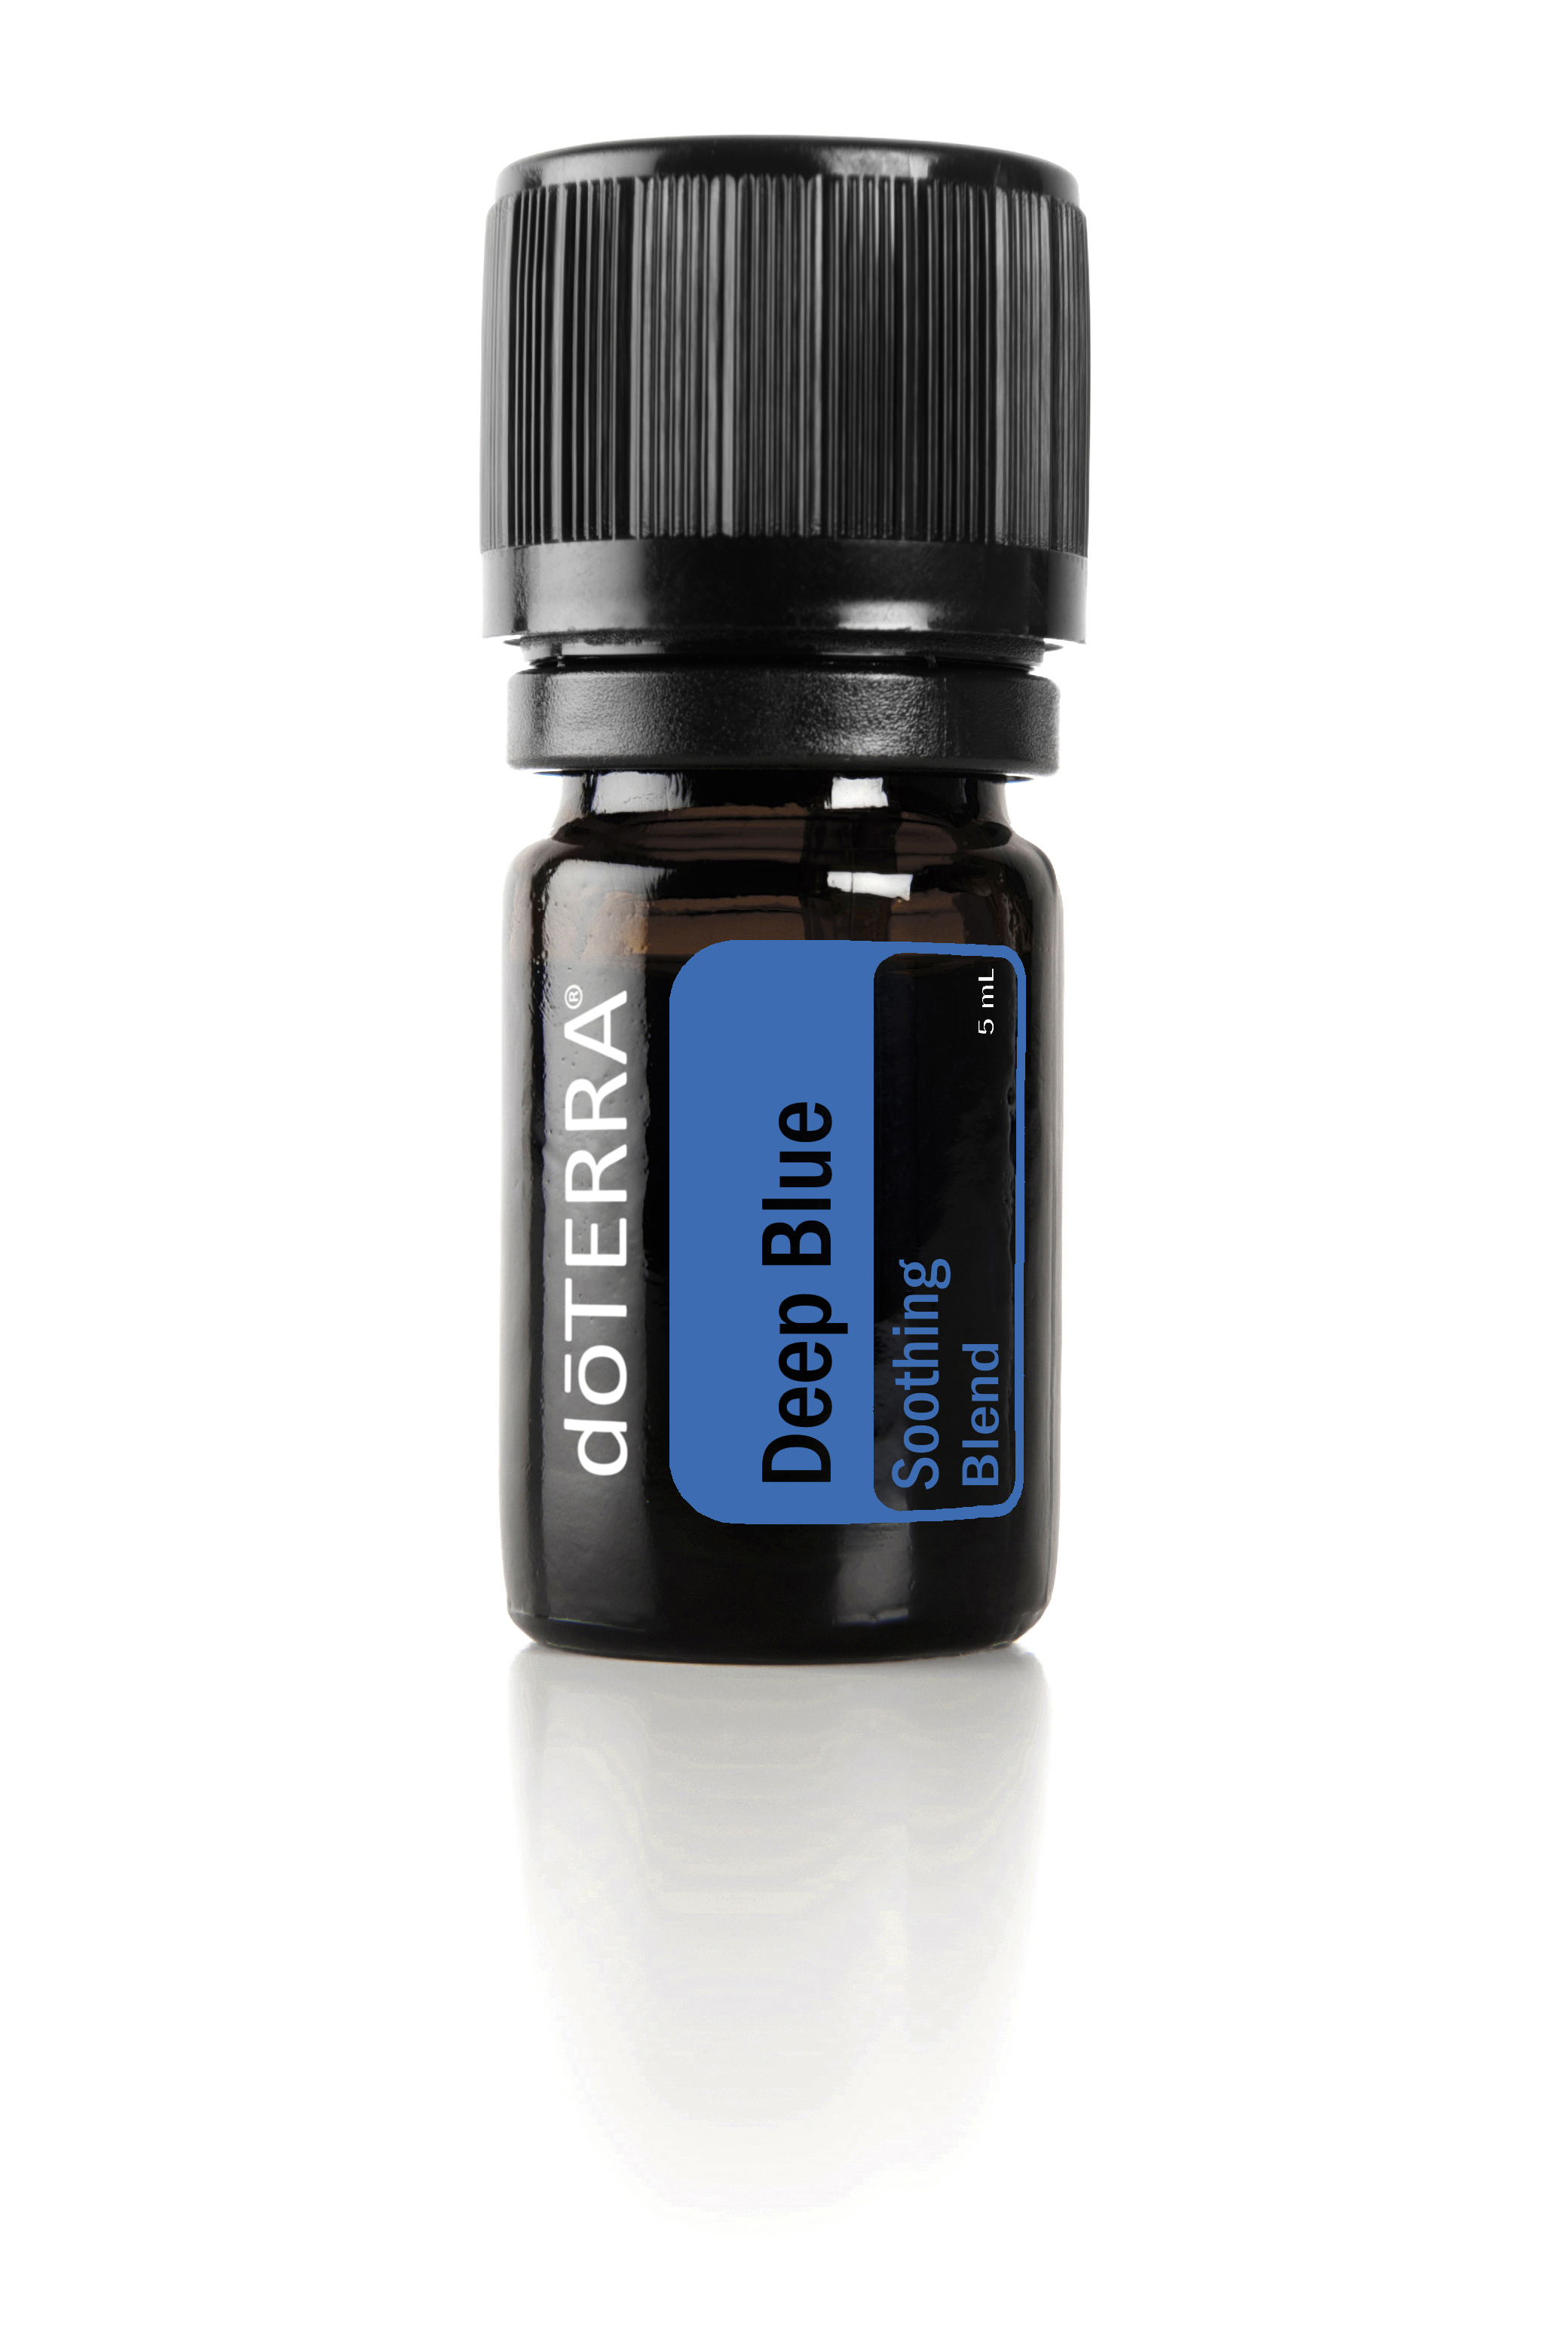 Deep Blue - Your Soothing Blend - The Soothing Essential Oil Blend is perfect for a soothing massage after a long day of work. It soothes and cools. After long hours on the computer, try rubbing Soothing Essential Oil Blend on your fingers, wrists, shoulders, and neck. A few drops of Soothing Blend diluted in fractionated coconut oil can be part of a cooling and comforting massage.Two Primary benefits of Soothing Essential Oil Blend 1. Soothes occasional sore muscles and joints2. Supports healthy circulationUses for Soothing Essential Oil Blend 1. Apply on feet and knees before and after exercise. 2. Massage Soothing Essential Oil Blend with a few drops of carrier oil onto growing kids' legs before bedtime. 3. Rub Soothing Essential Oil Blend on lower back muscles after a day of heavy lifting at work or during a move. 4. Soothing Essential Oil Blend works effectively to reduce the soreness of muscles after long, intense periods of physical training. Rub on sore muscles. 5. The Soothing Essential Oil Blend gives wonderful soothing relief after physical therapy. 6. If you suffer from occasional head tension, try adding a few drops to your diffuser, or mixing a few drops with fractionated coconut oil and applying it topically to the back of the neck.